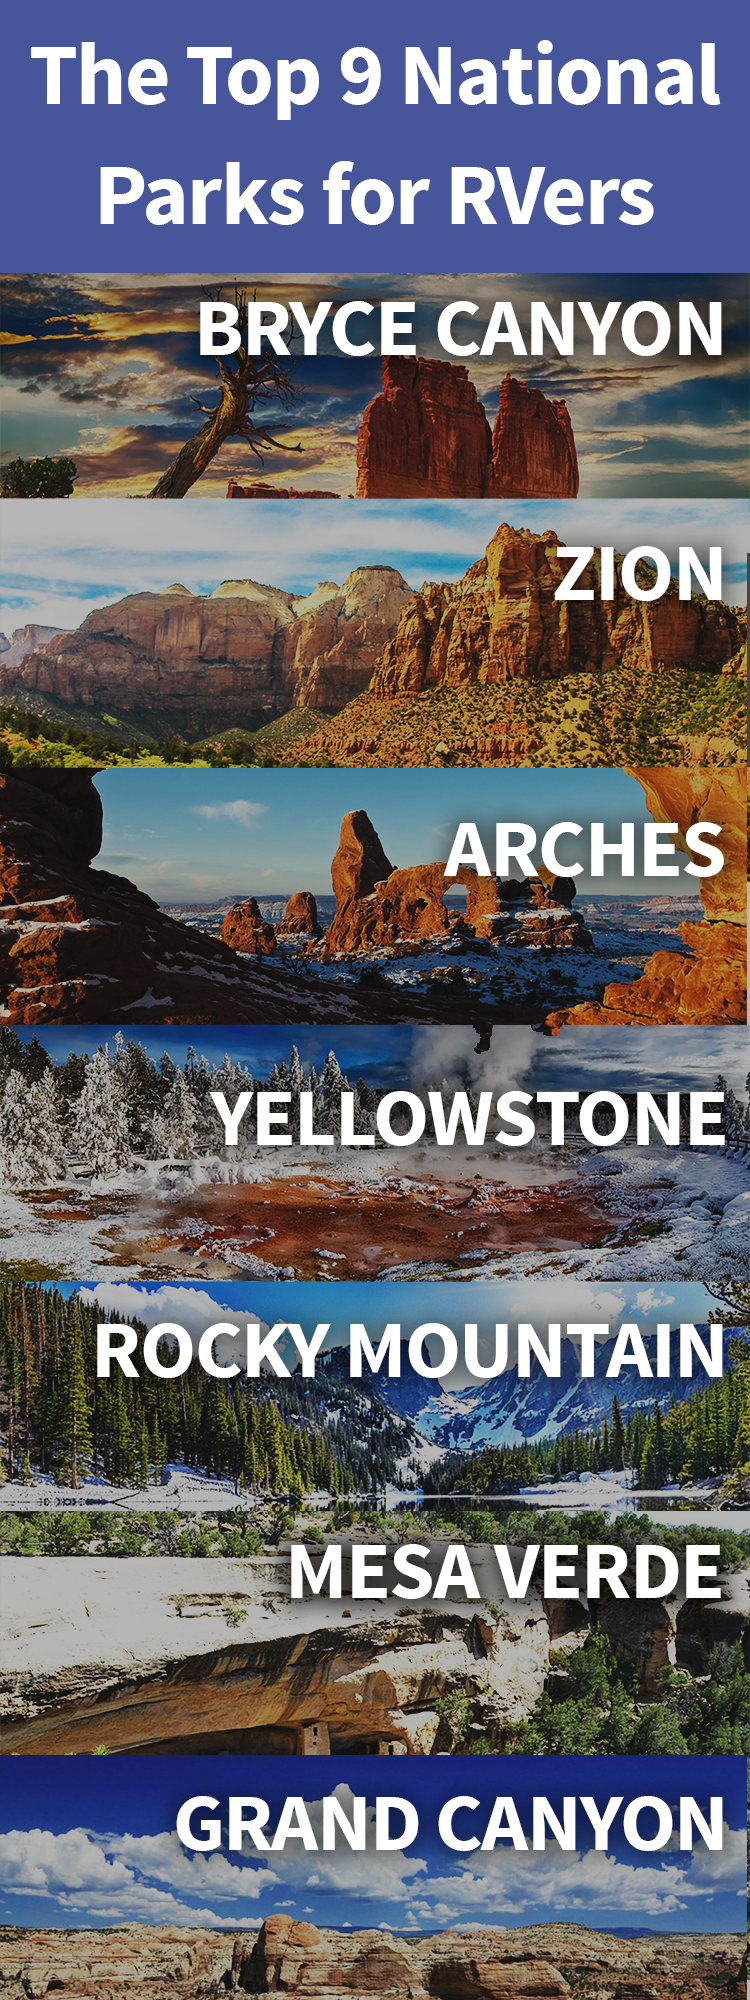 9 Awesome National Parks For RVers